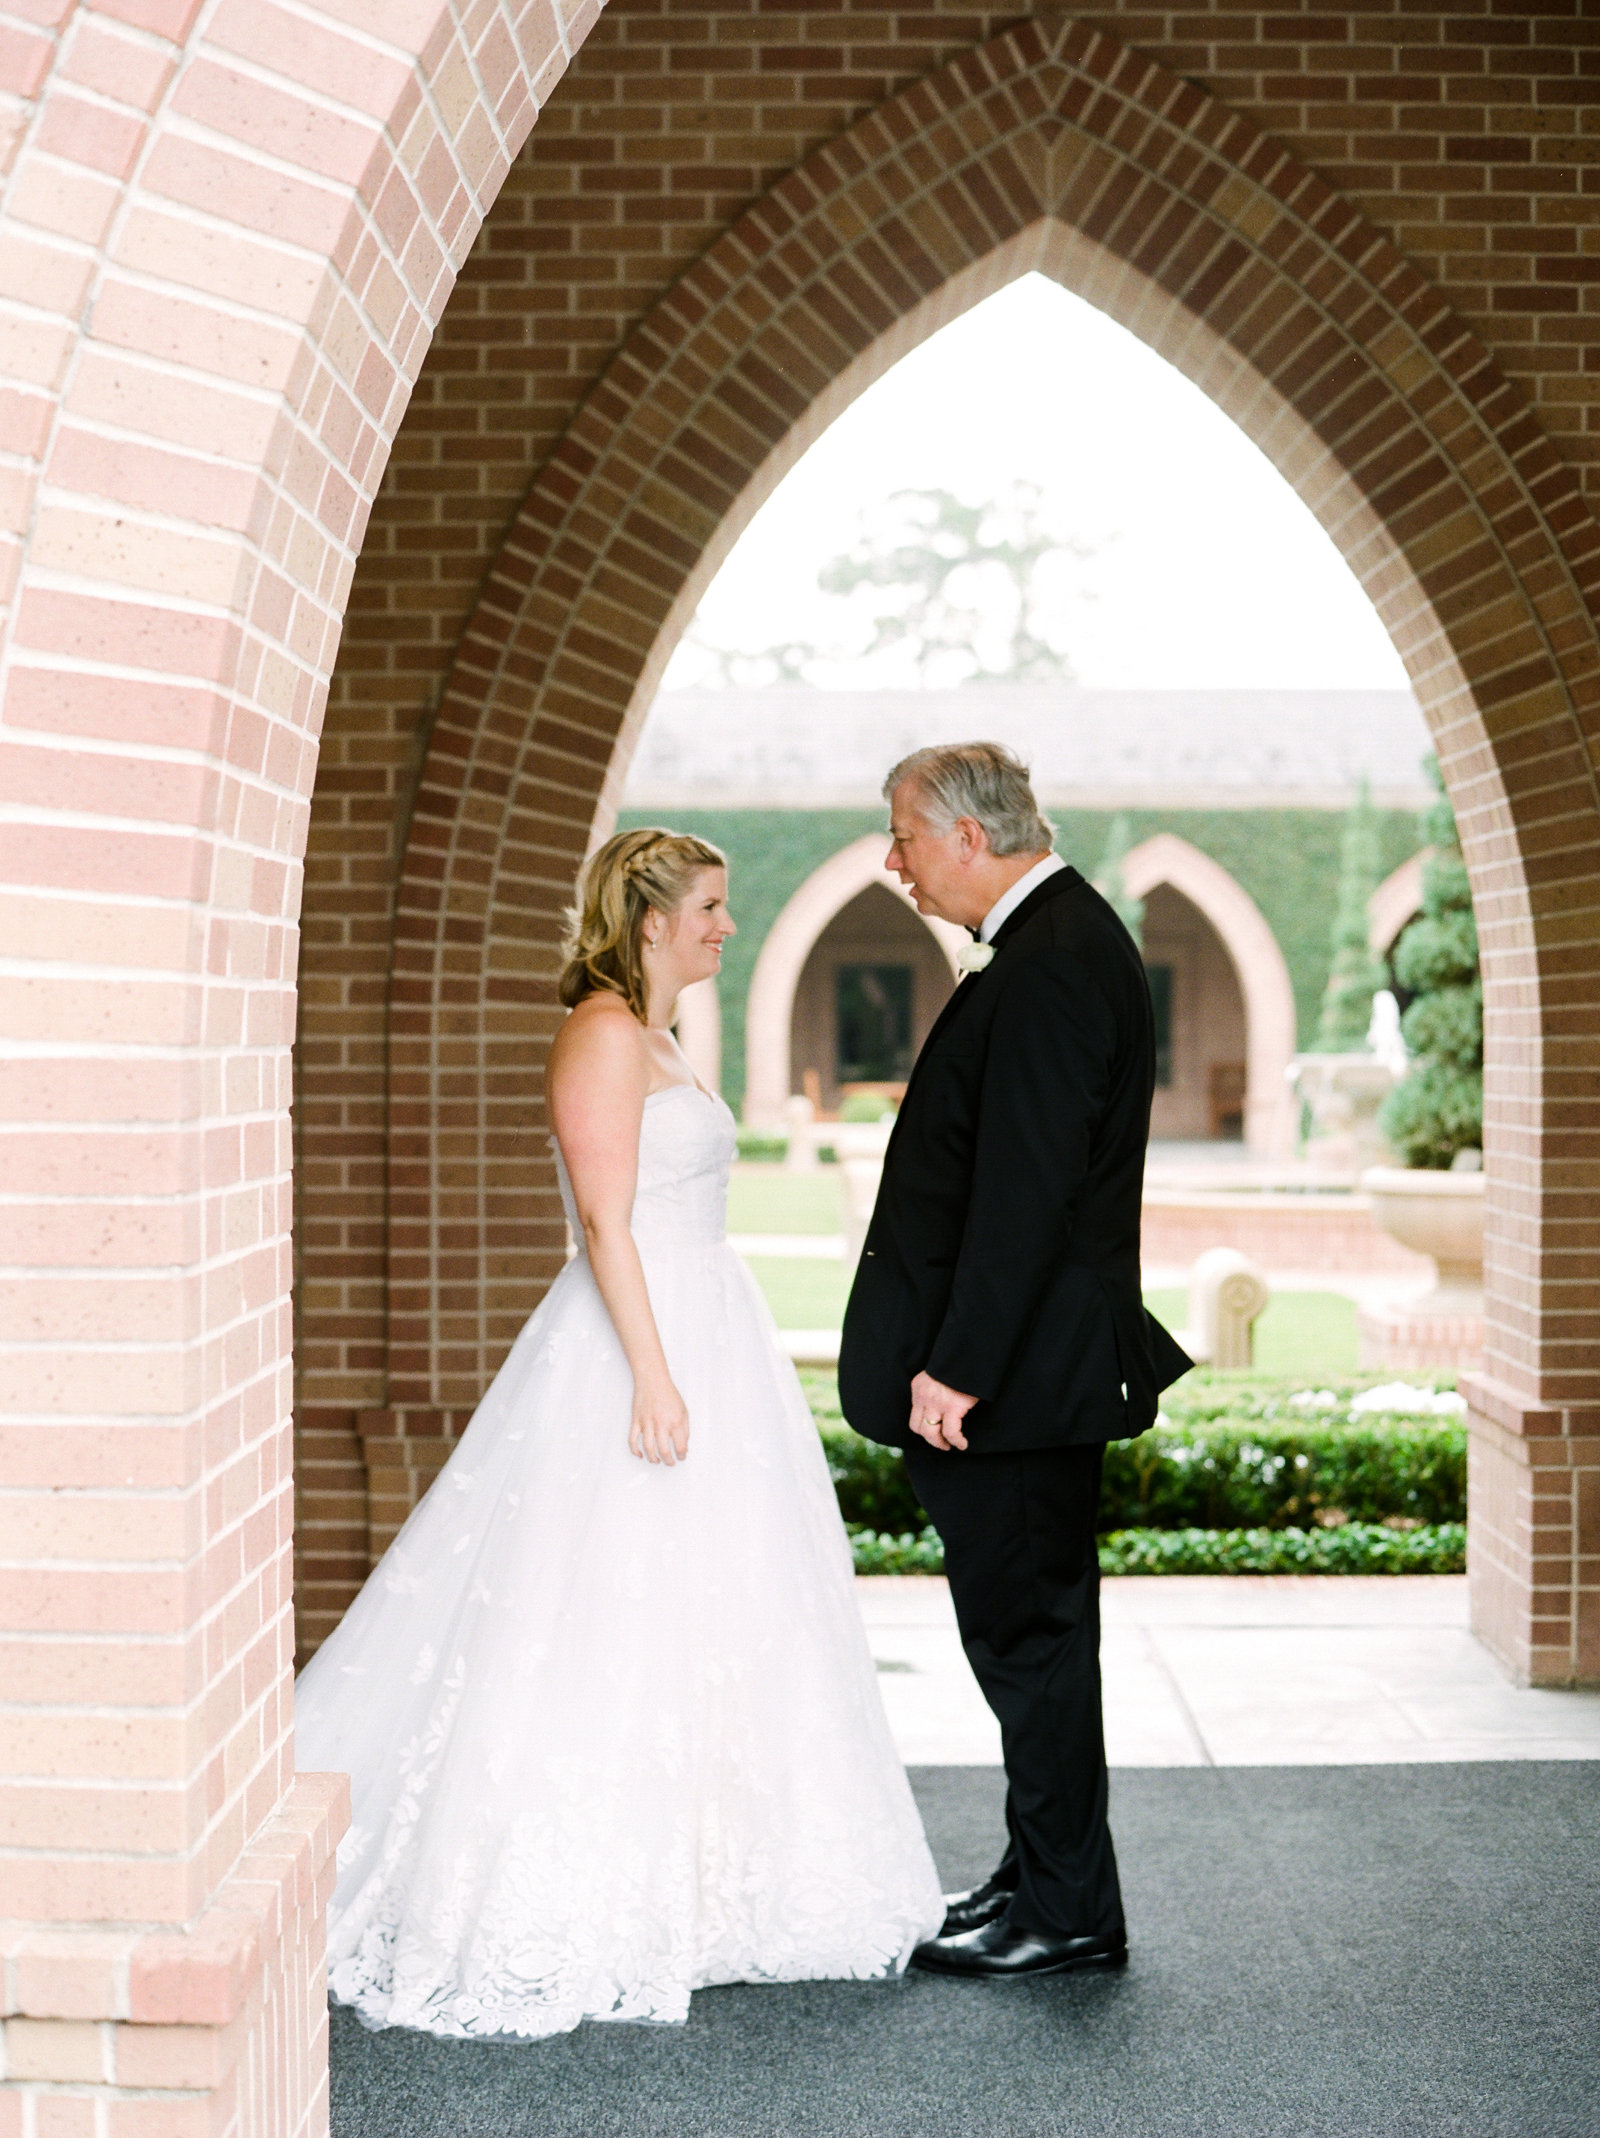 0011_St_Martin_Houston_Wedding_The_Astorian.jpg